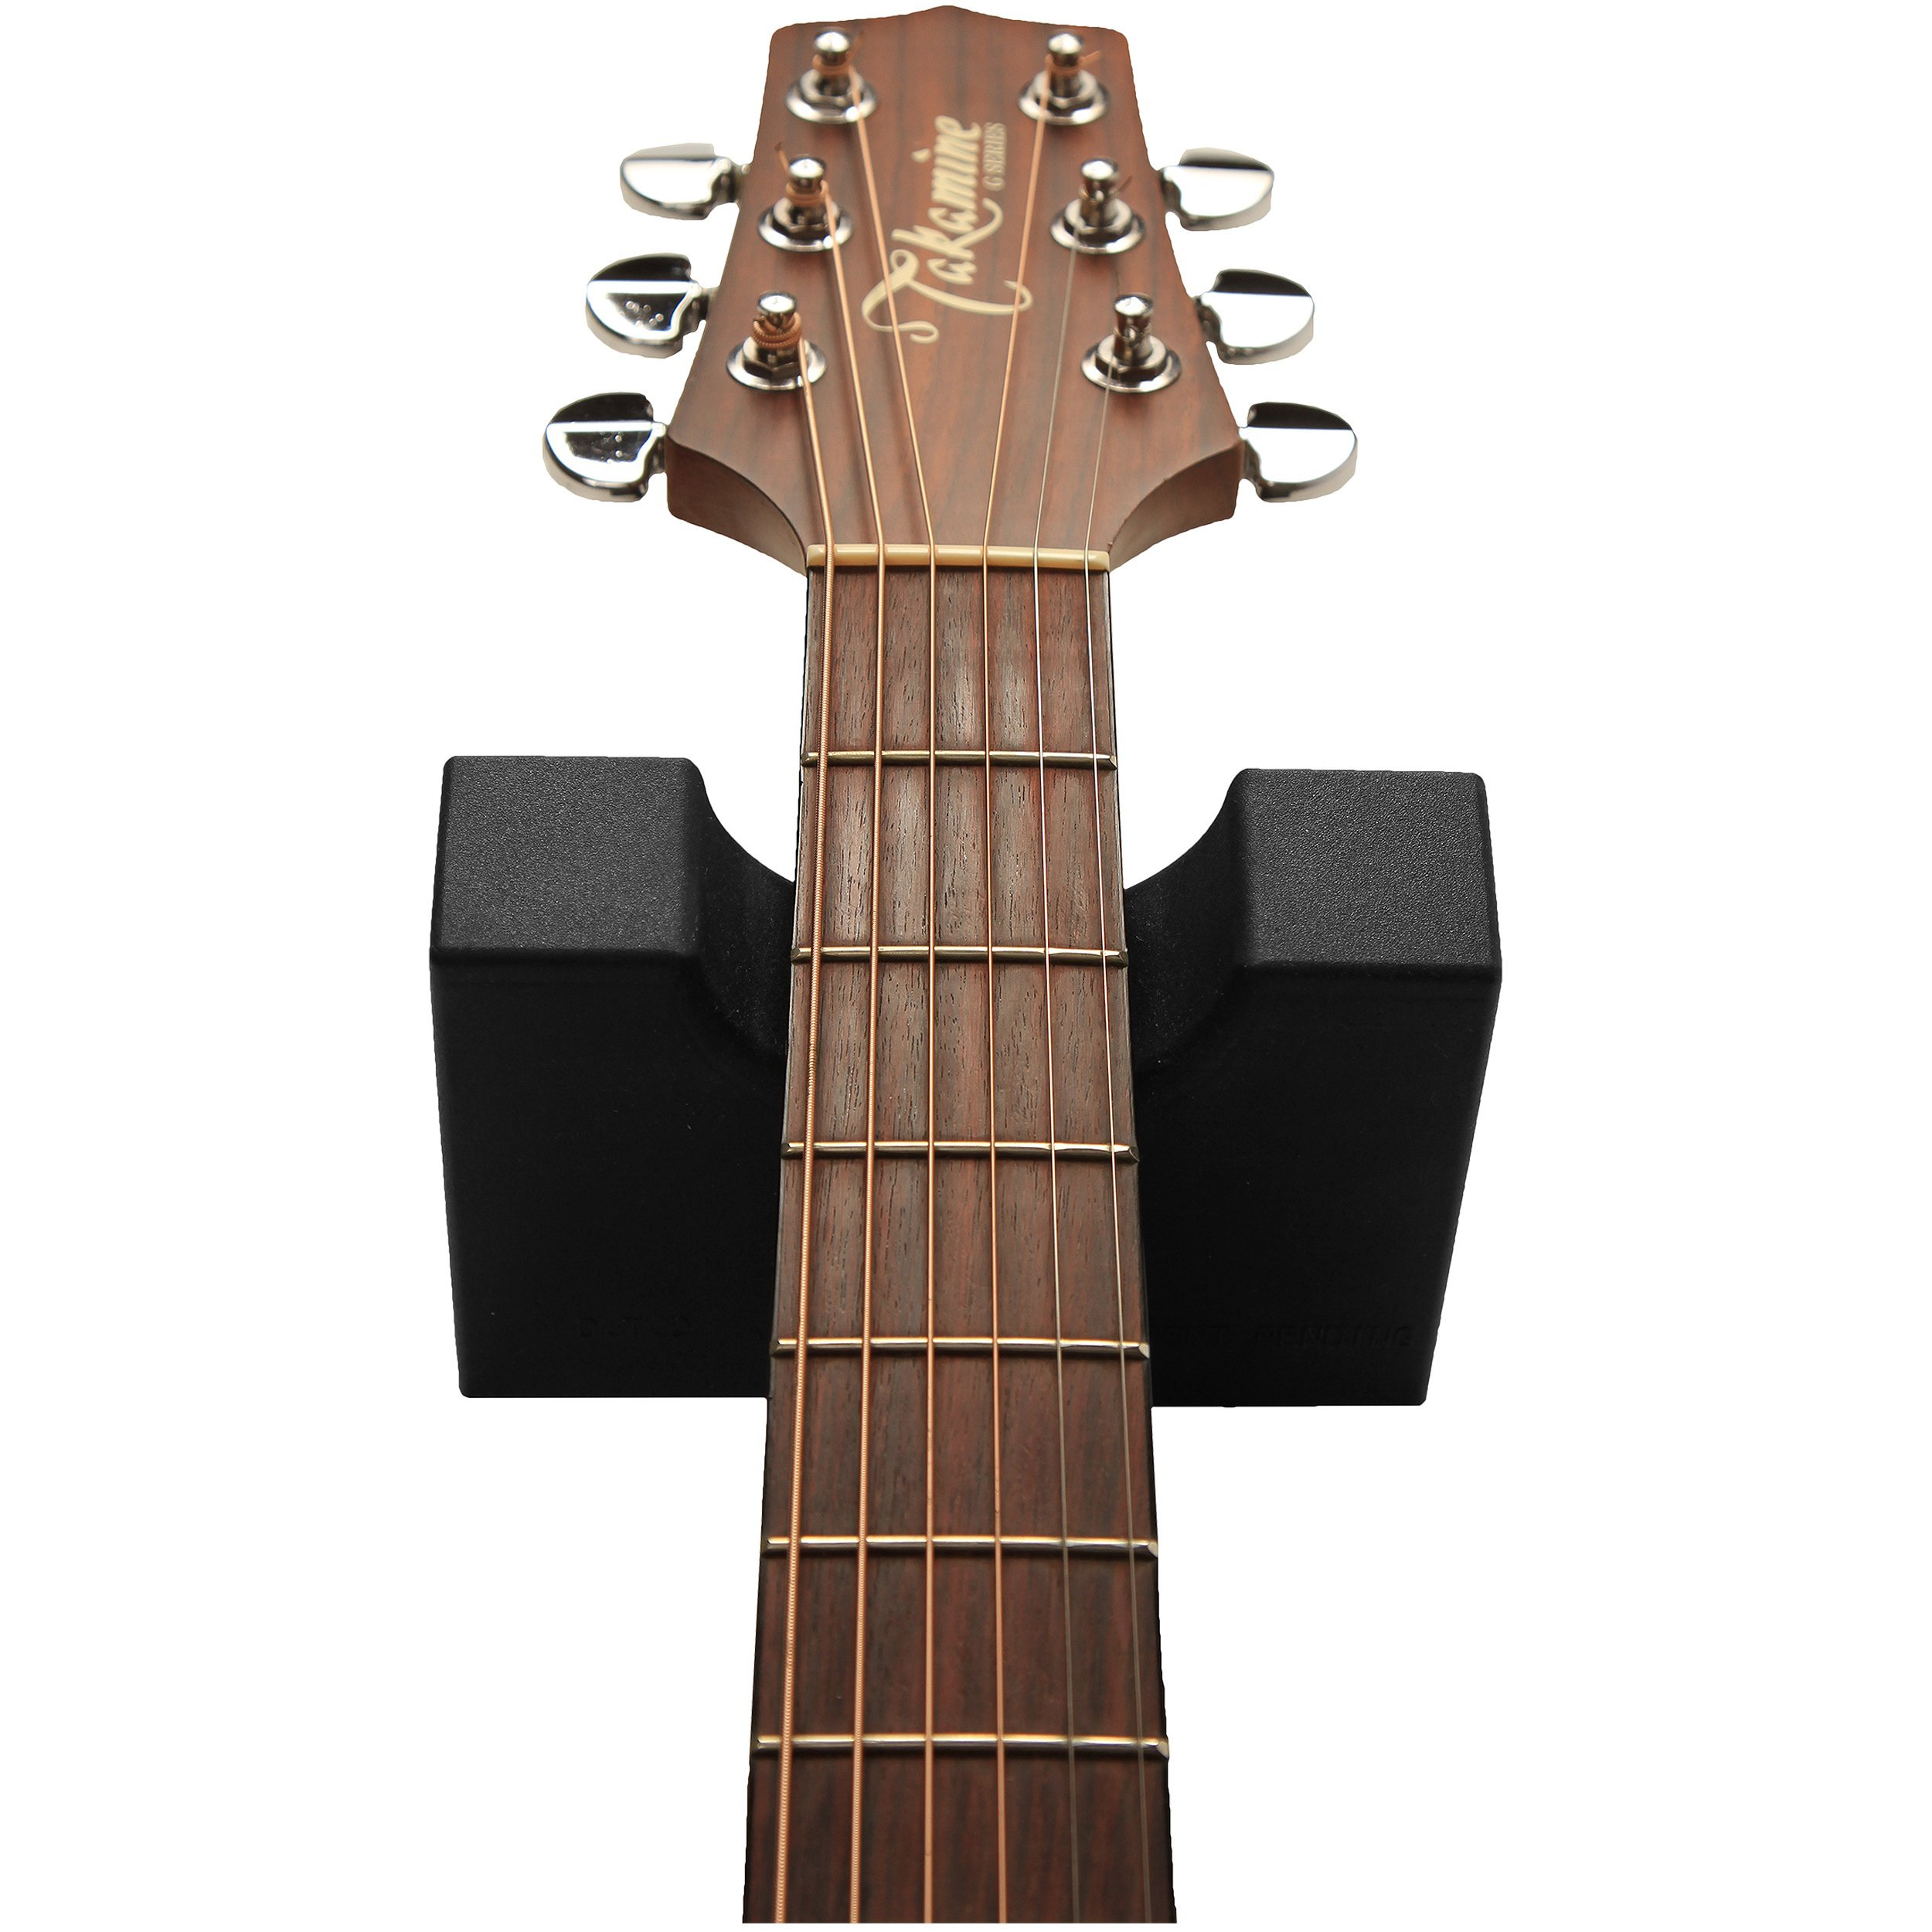 Stringer Stand - For Electric Guitars - Non Slip Always Grip - Portable Anti Slip Guitar Stand (Acoustic Electric Classical Bass Guitar,Single Guitar